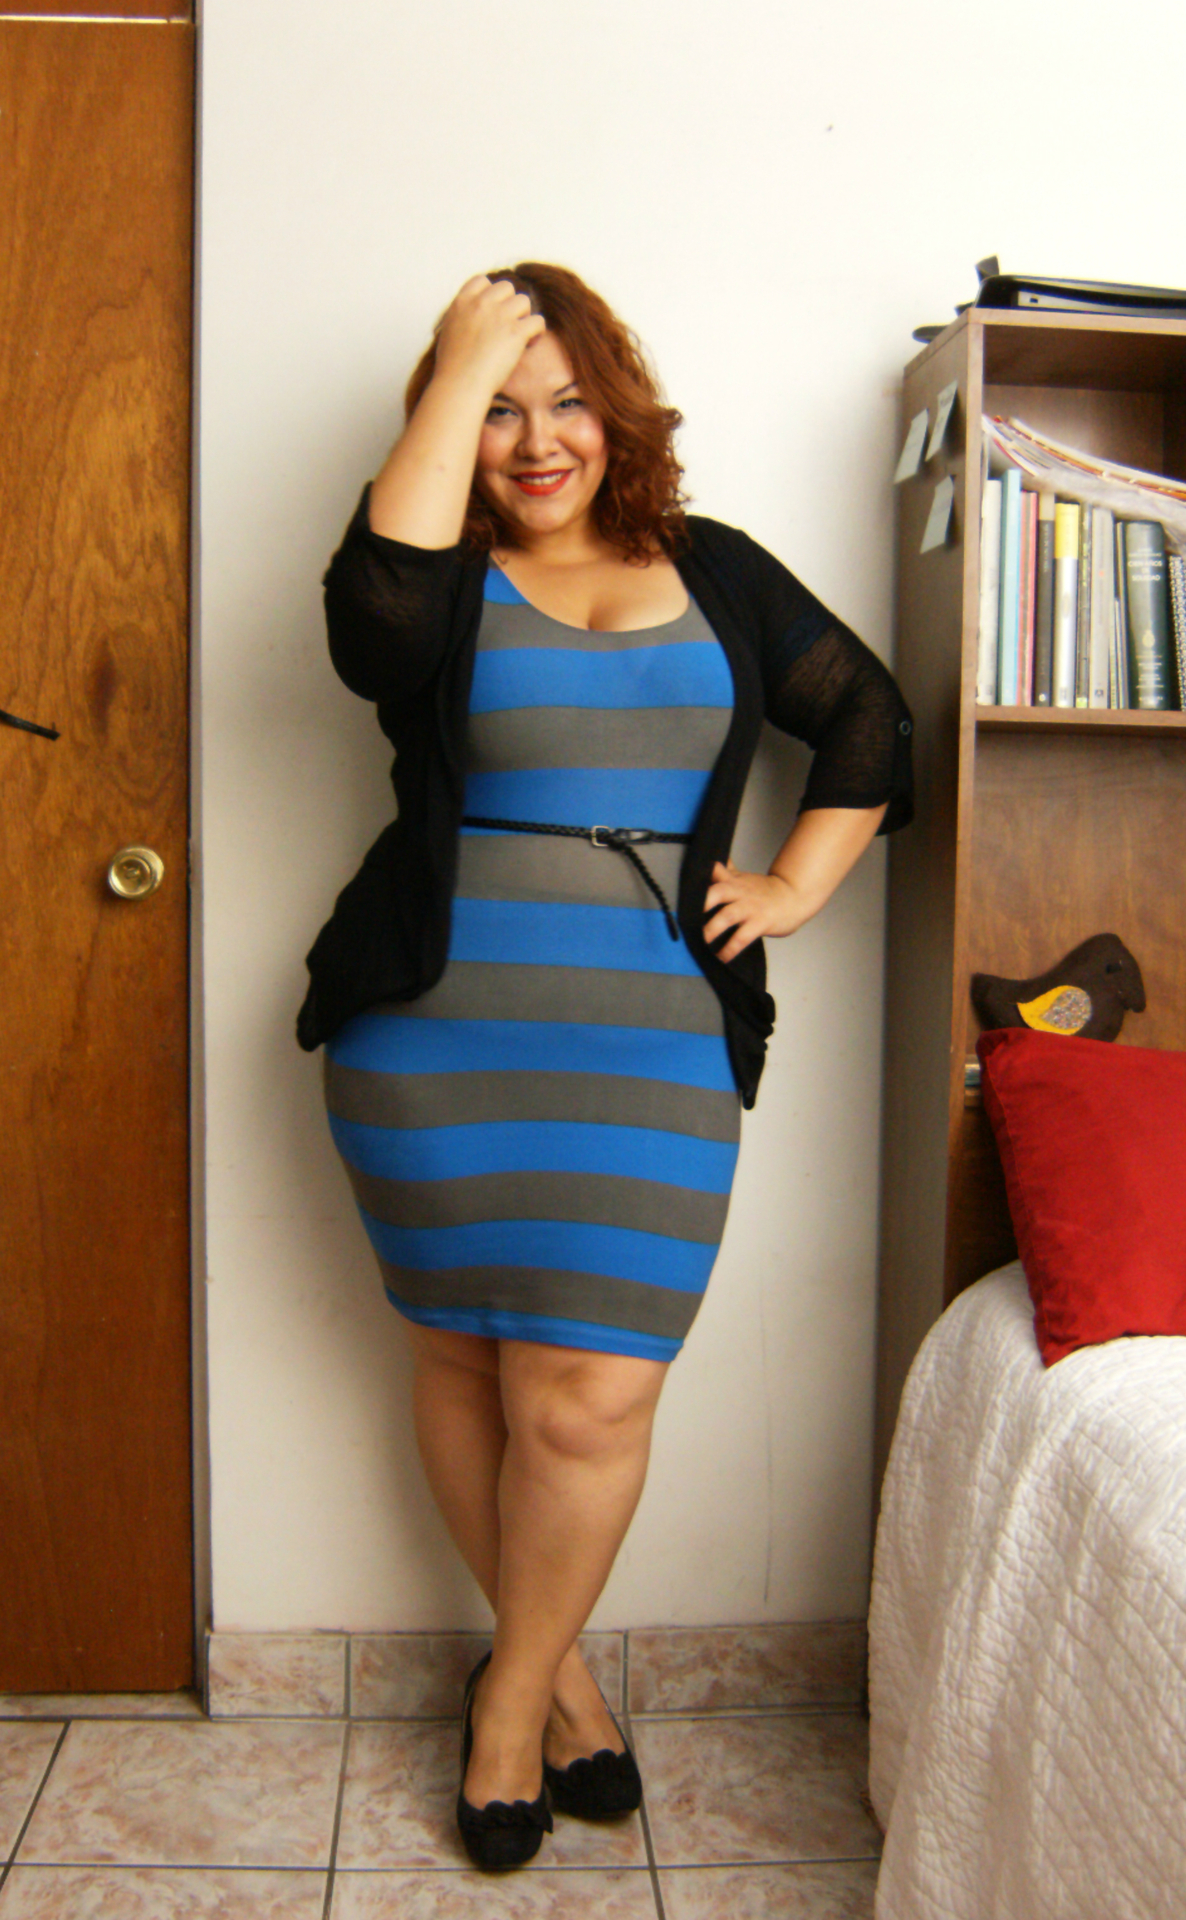 Thick girl tight dress